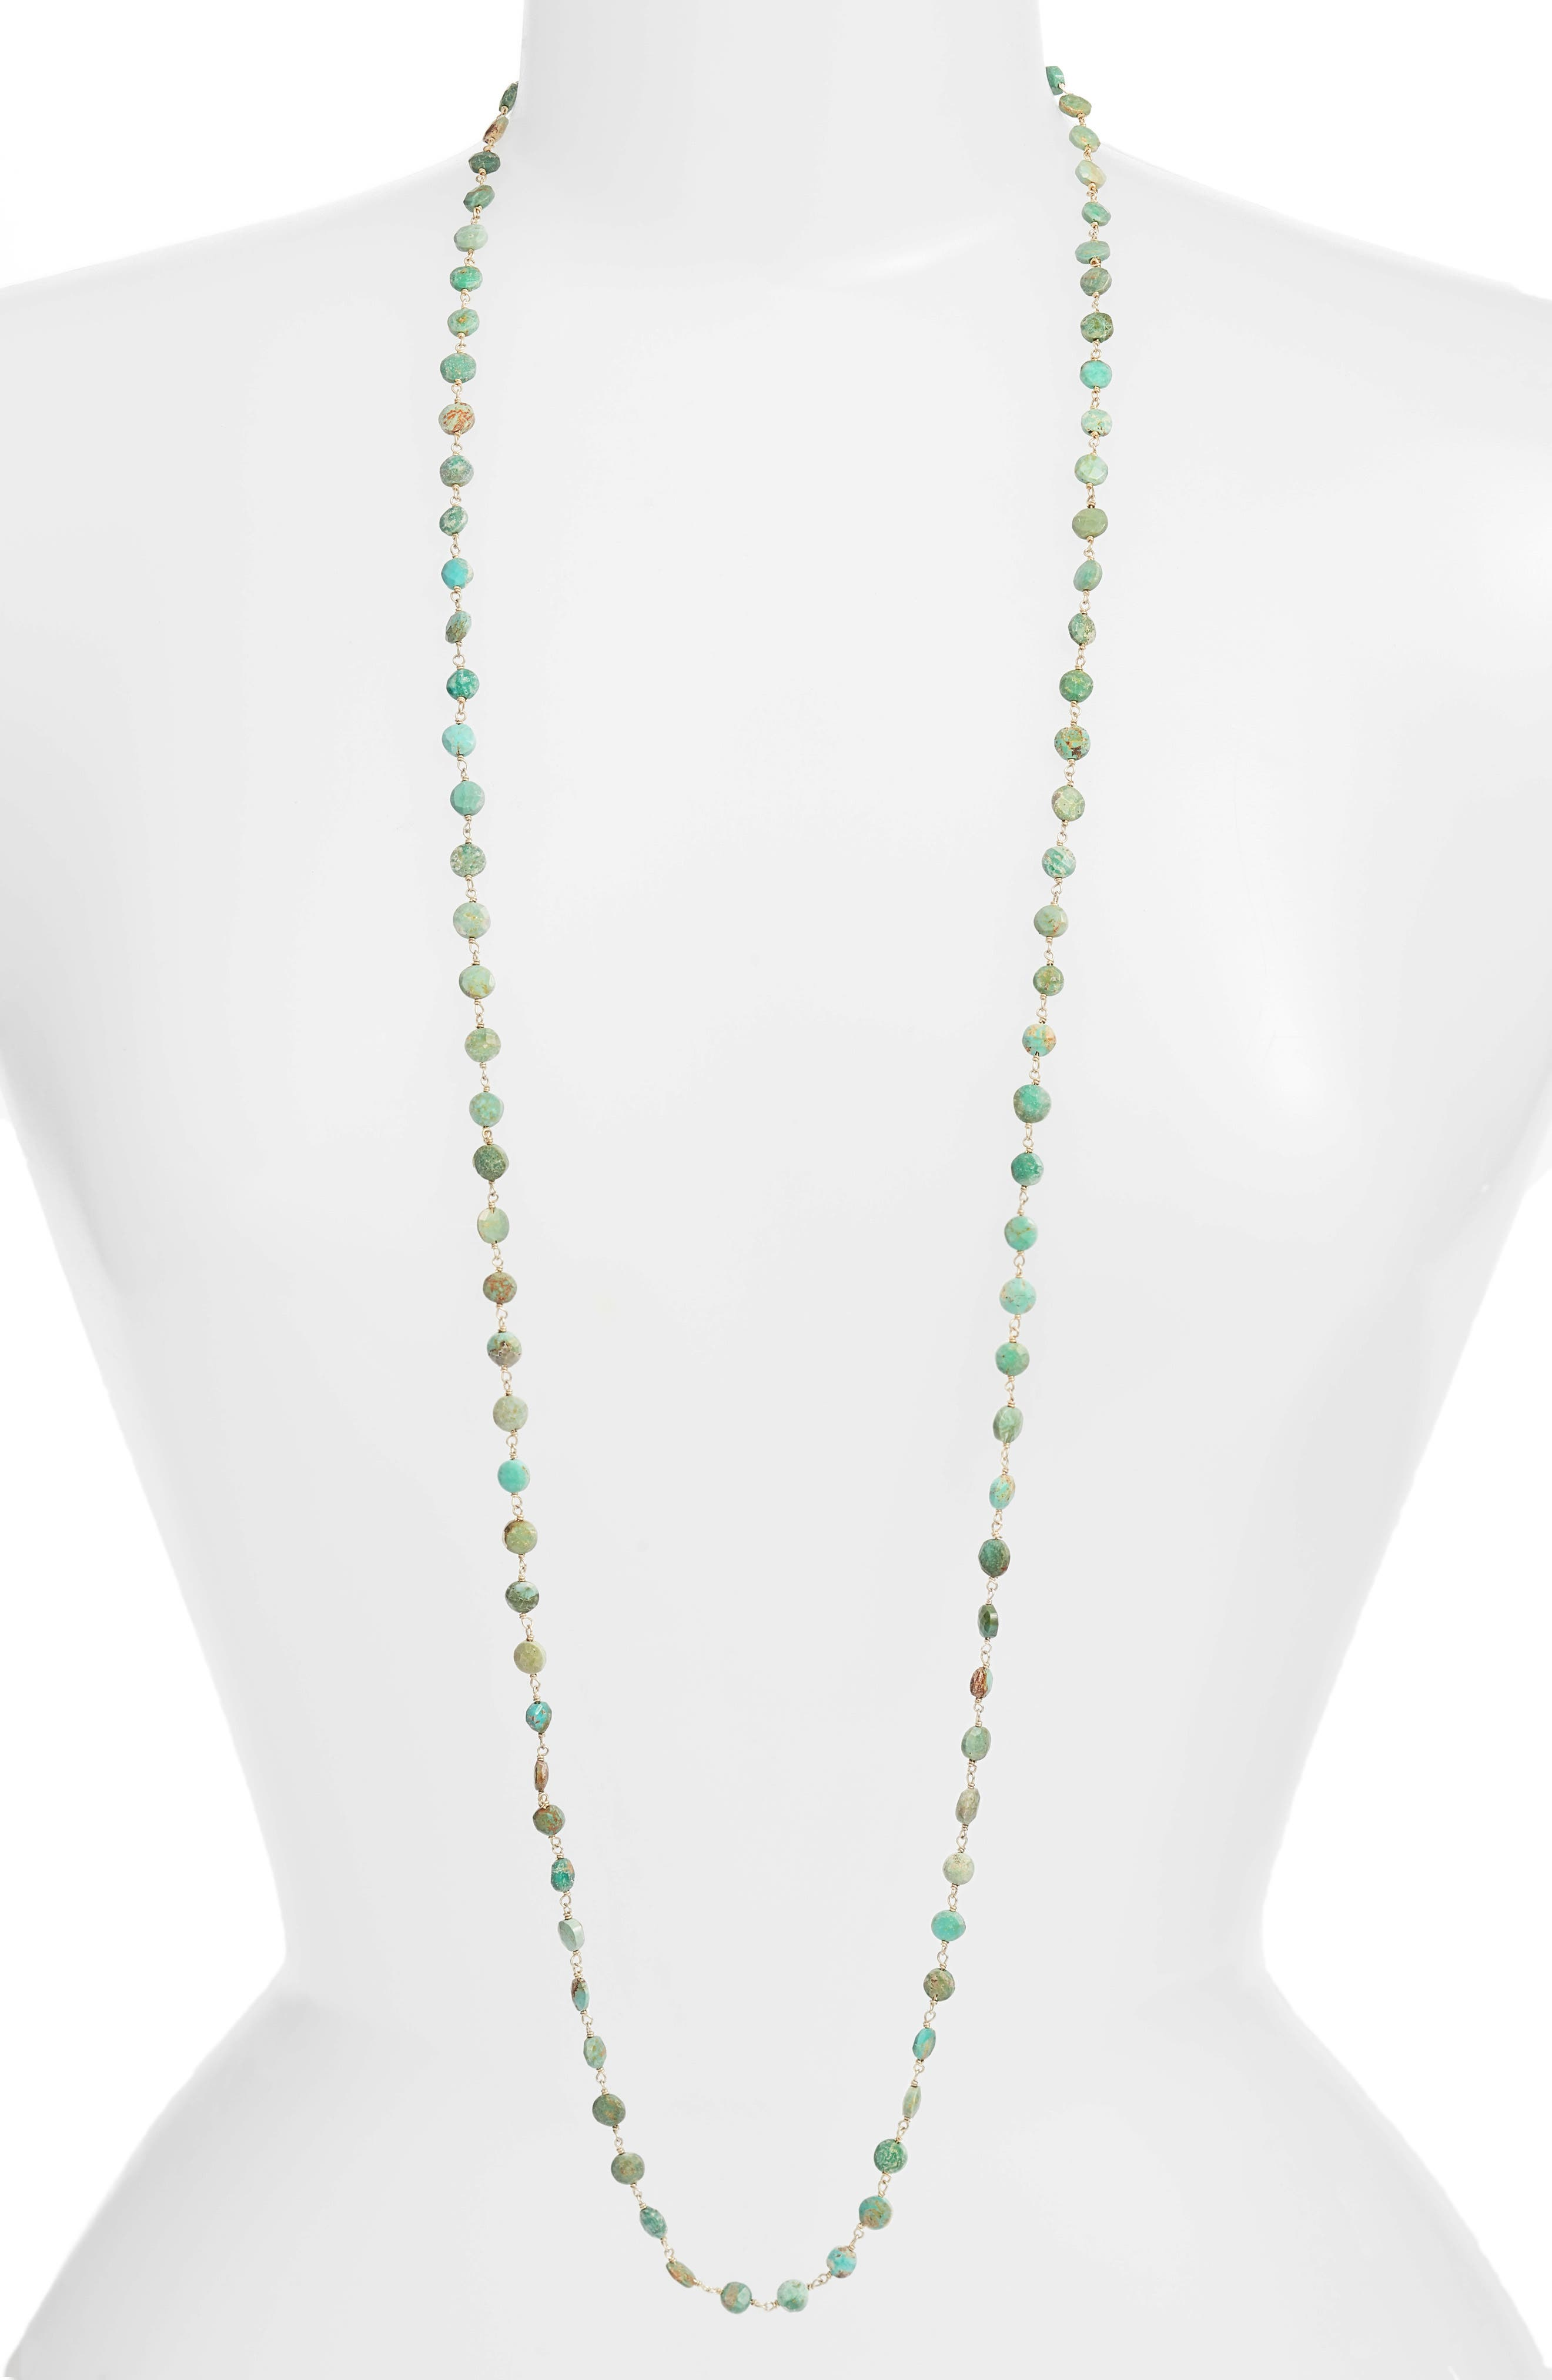 Diana Coin Necklace,                         Main,                         color, Turquoise Coin